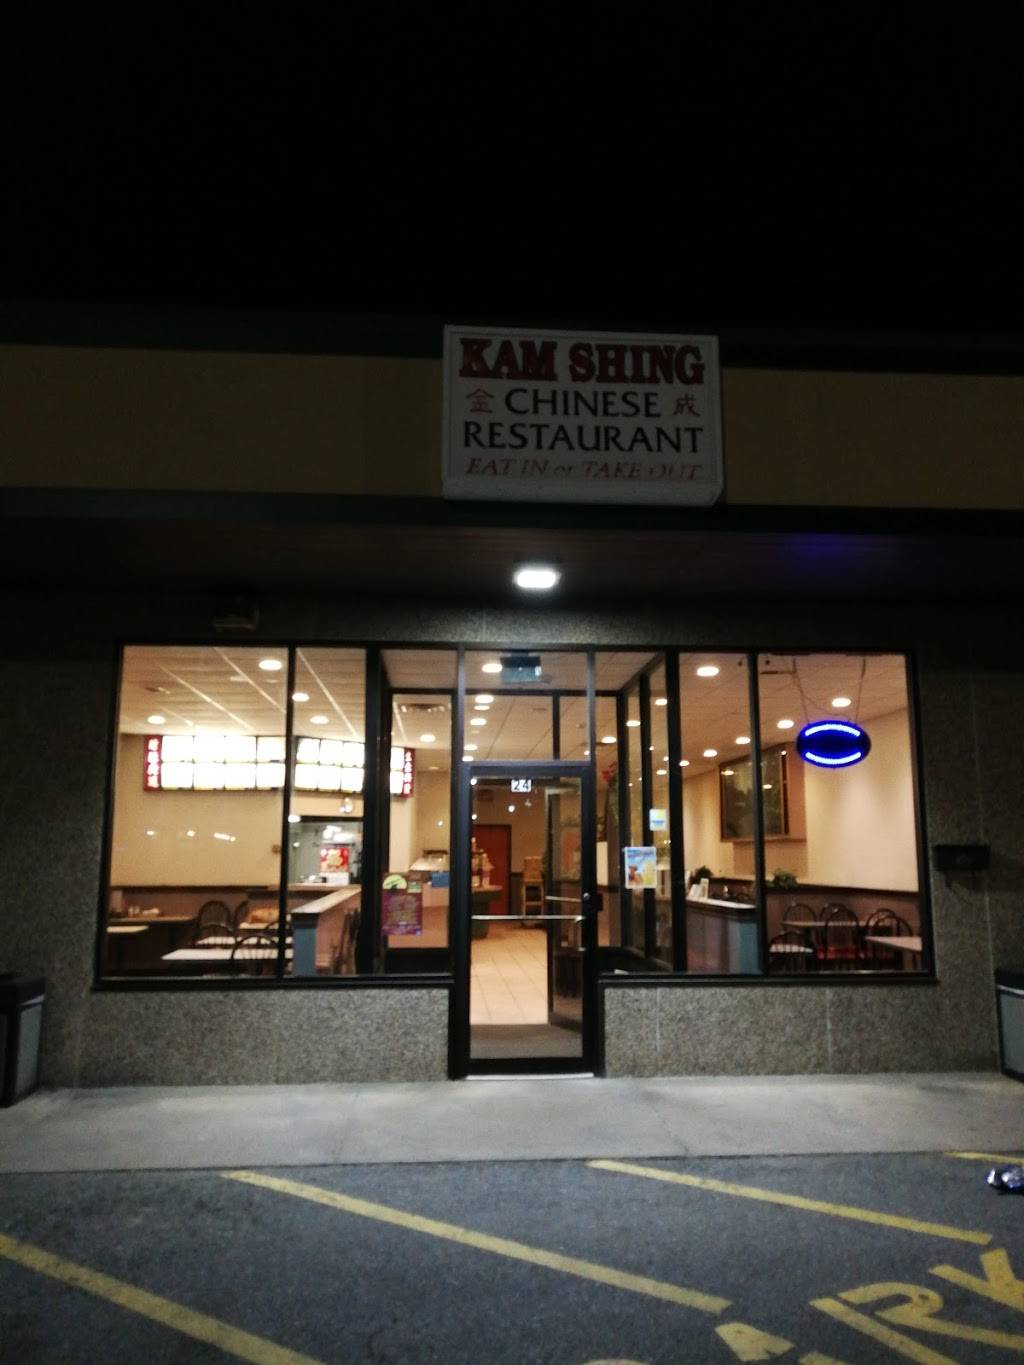 Kam Shing Restaurant | restaurant | 24 Gooding Ave, Bristol, RI 02809, USA | 4012541012 OR +1 401-254-1012